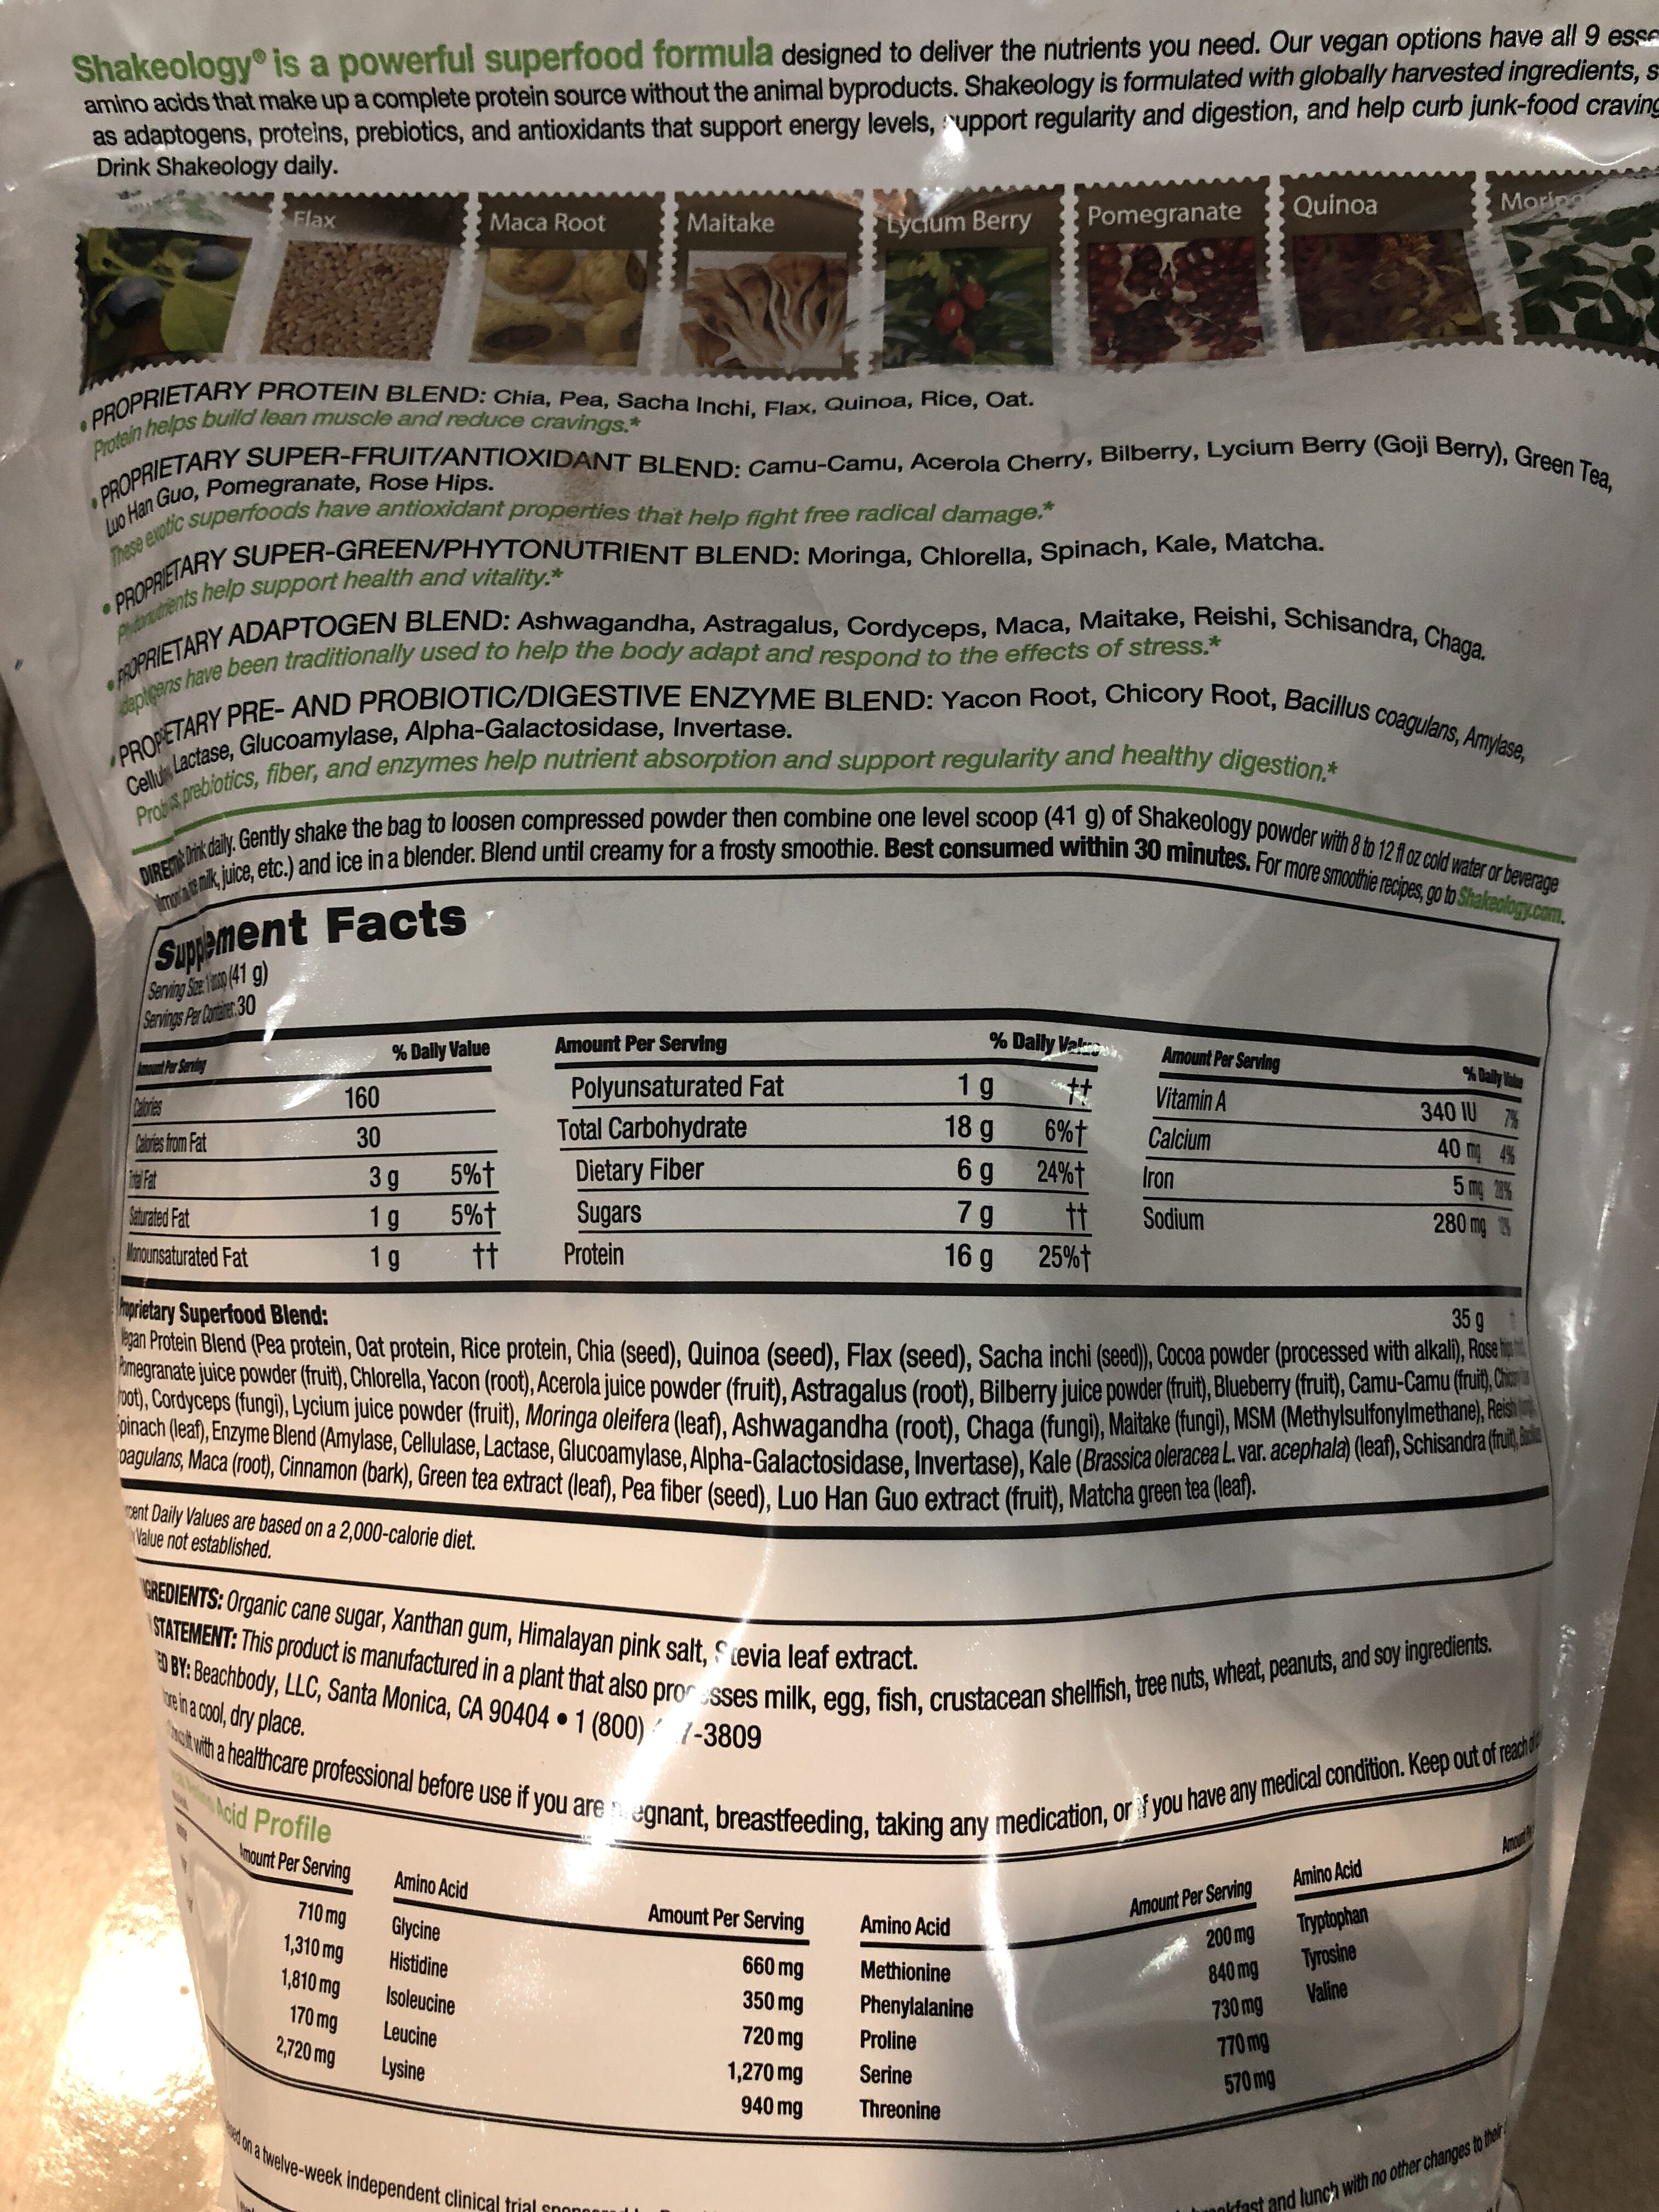 Shakeology - Nutrition facts